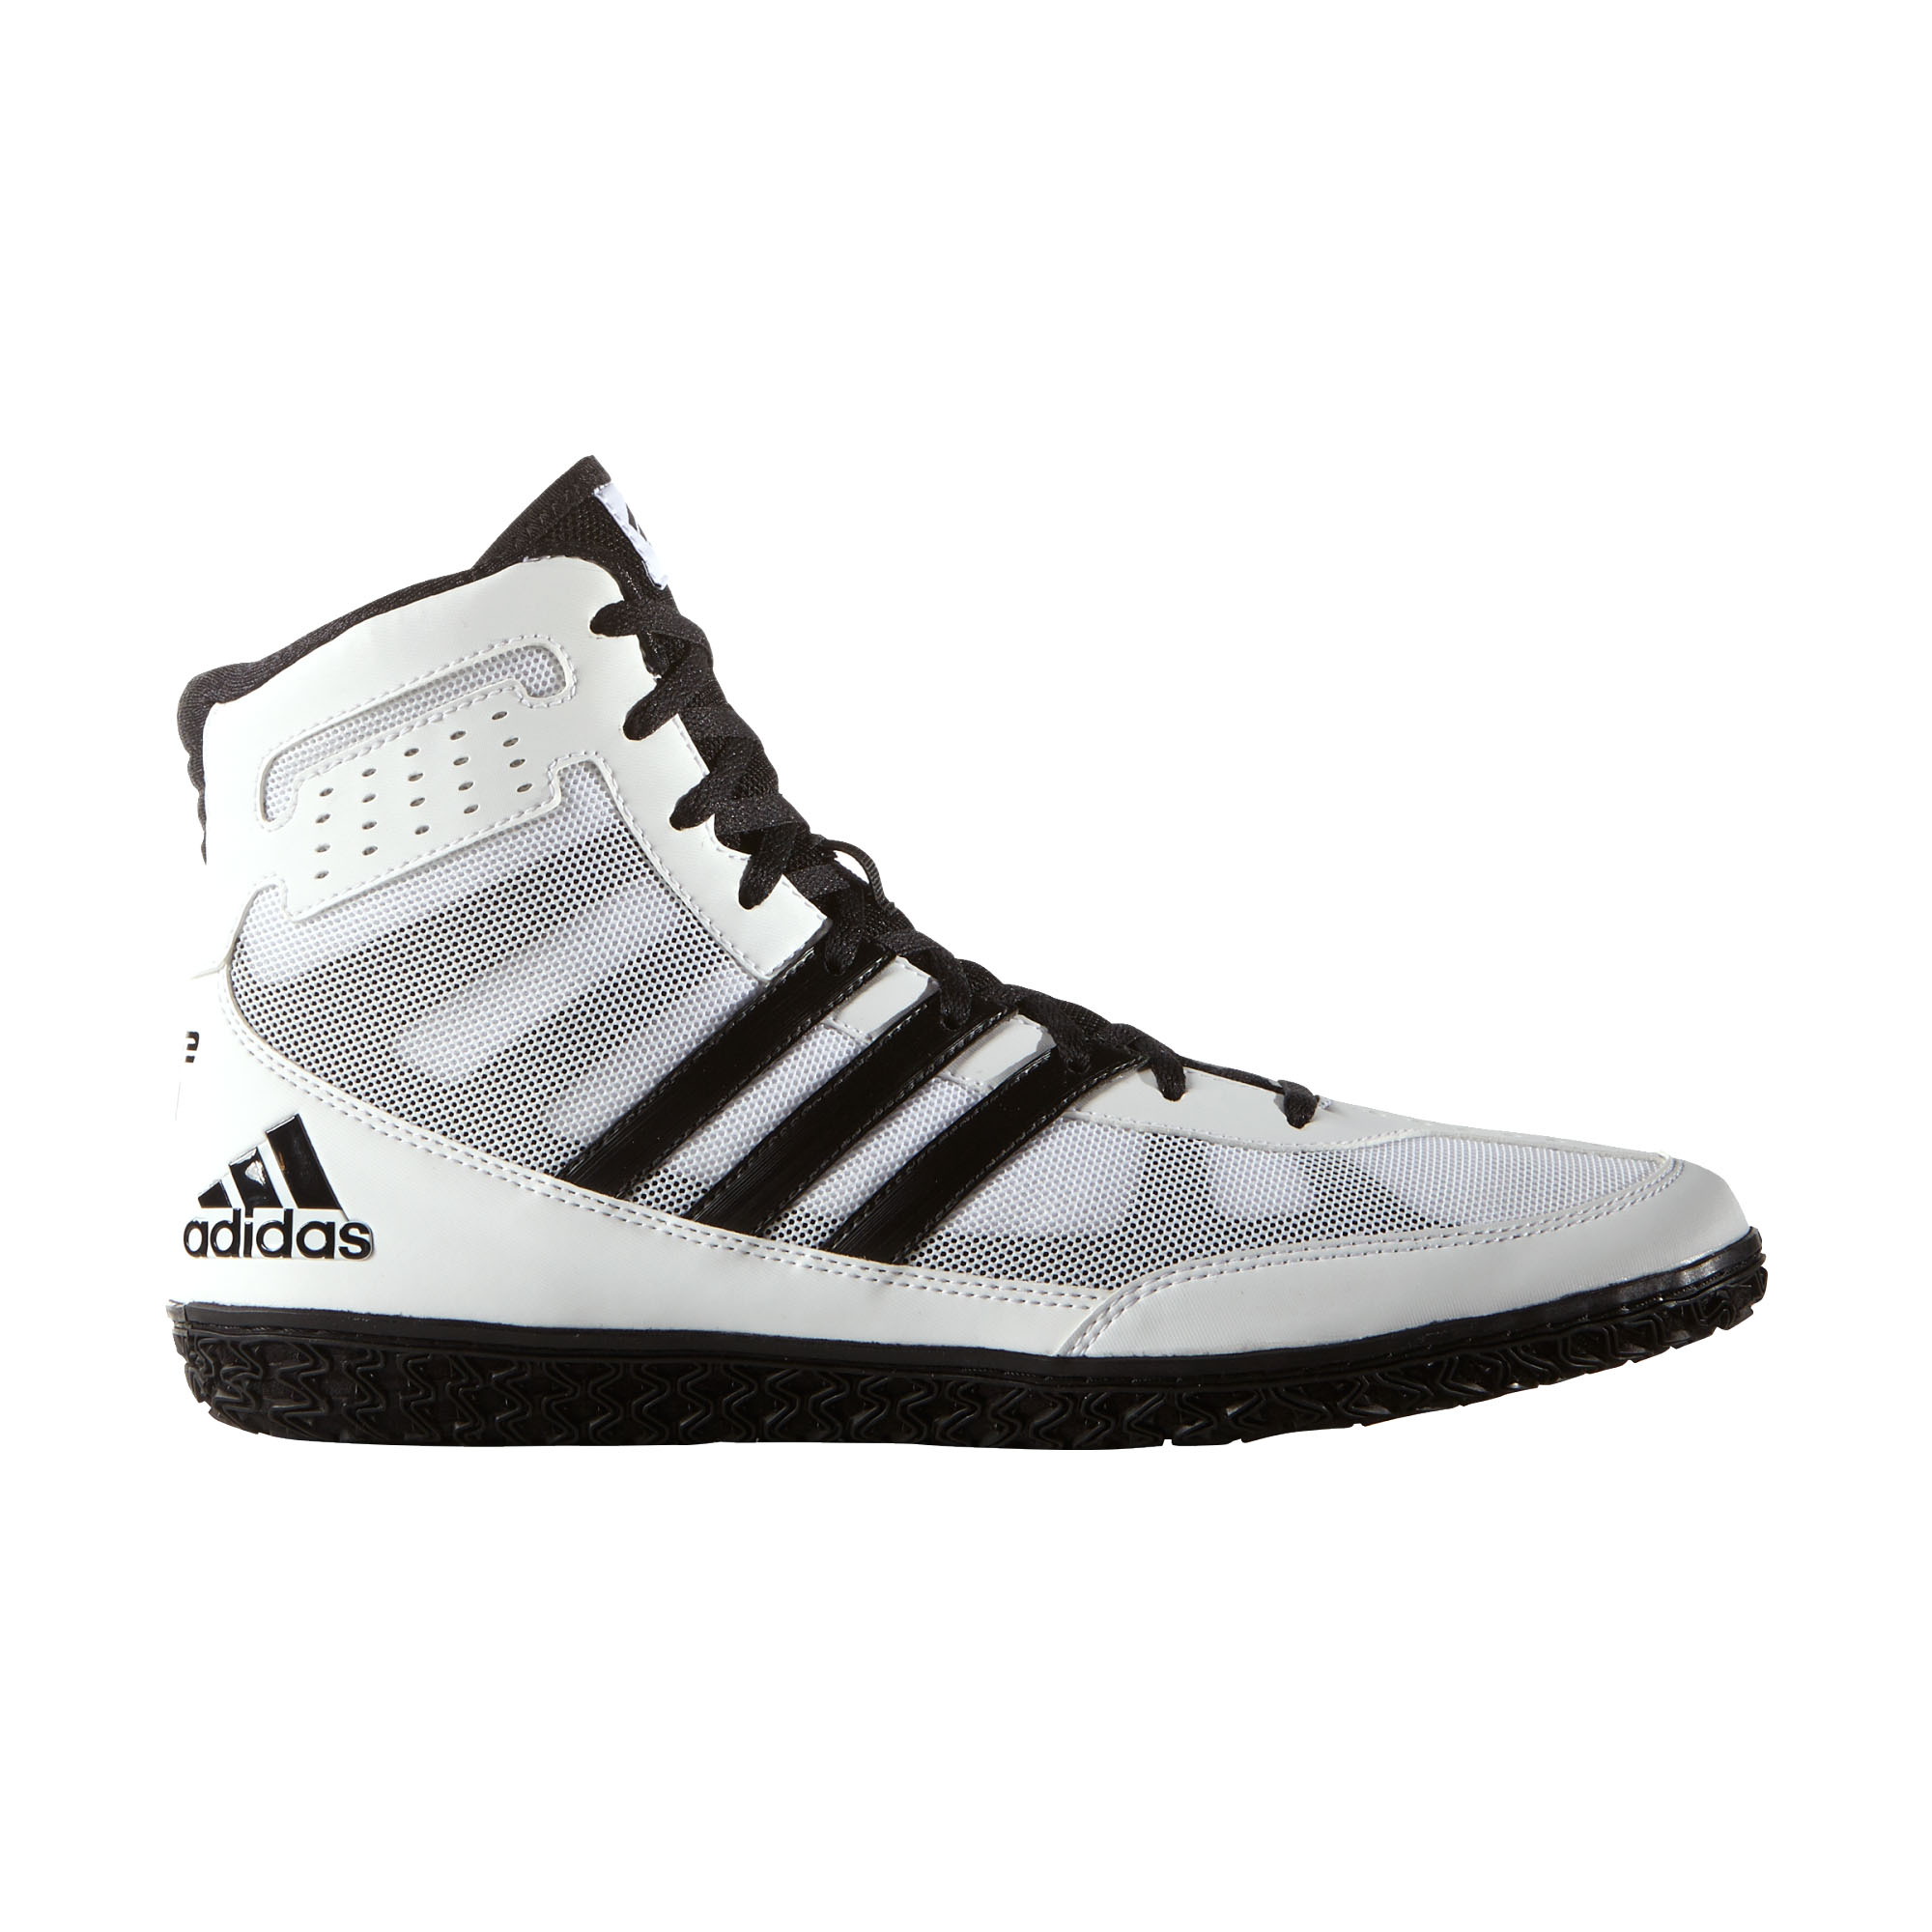 adidas Mat Wizard 3 Mens Adult Wrestling Trainer Shoe Boot White ... 7795208cc